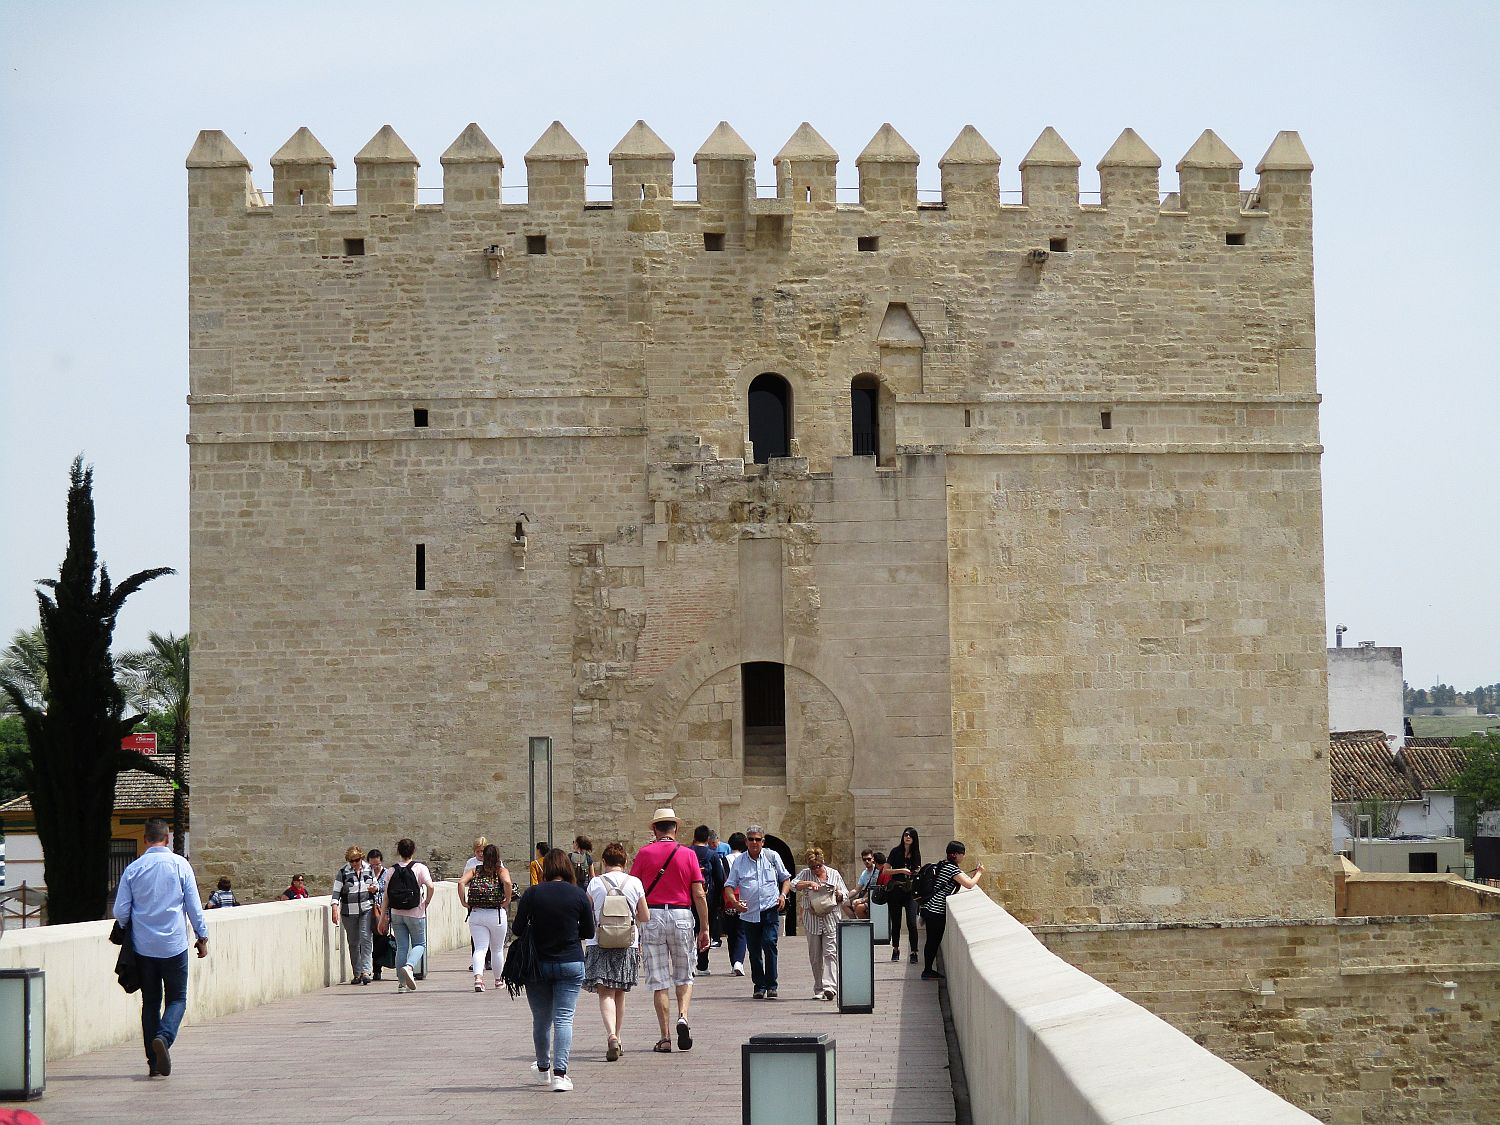 The Roman Bridge is restored, with many arcades, originally constructed in the early 1st century BCE, which ends with Calahorra Tower, a fortified gate. The edifice is of Islamic origin.